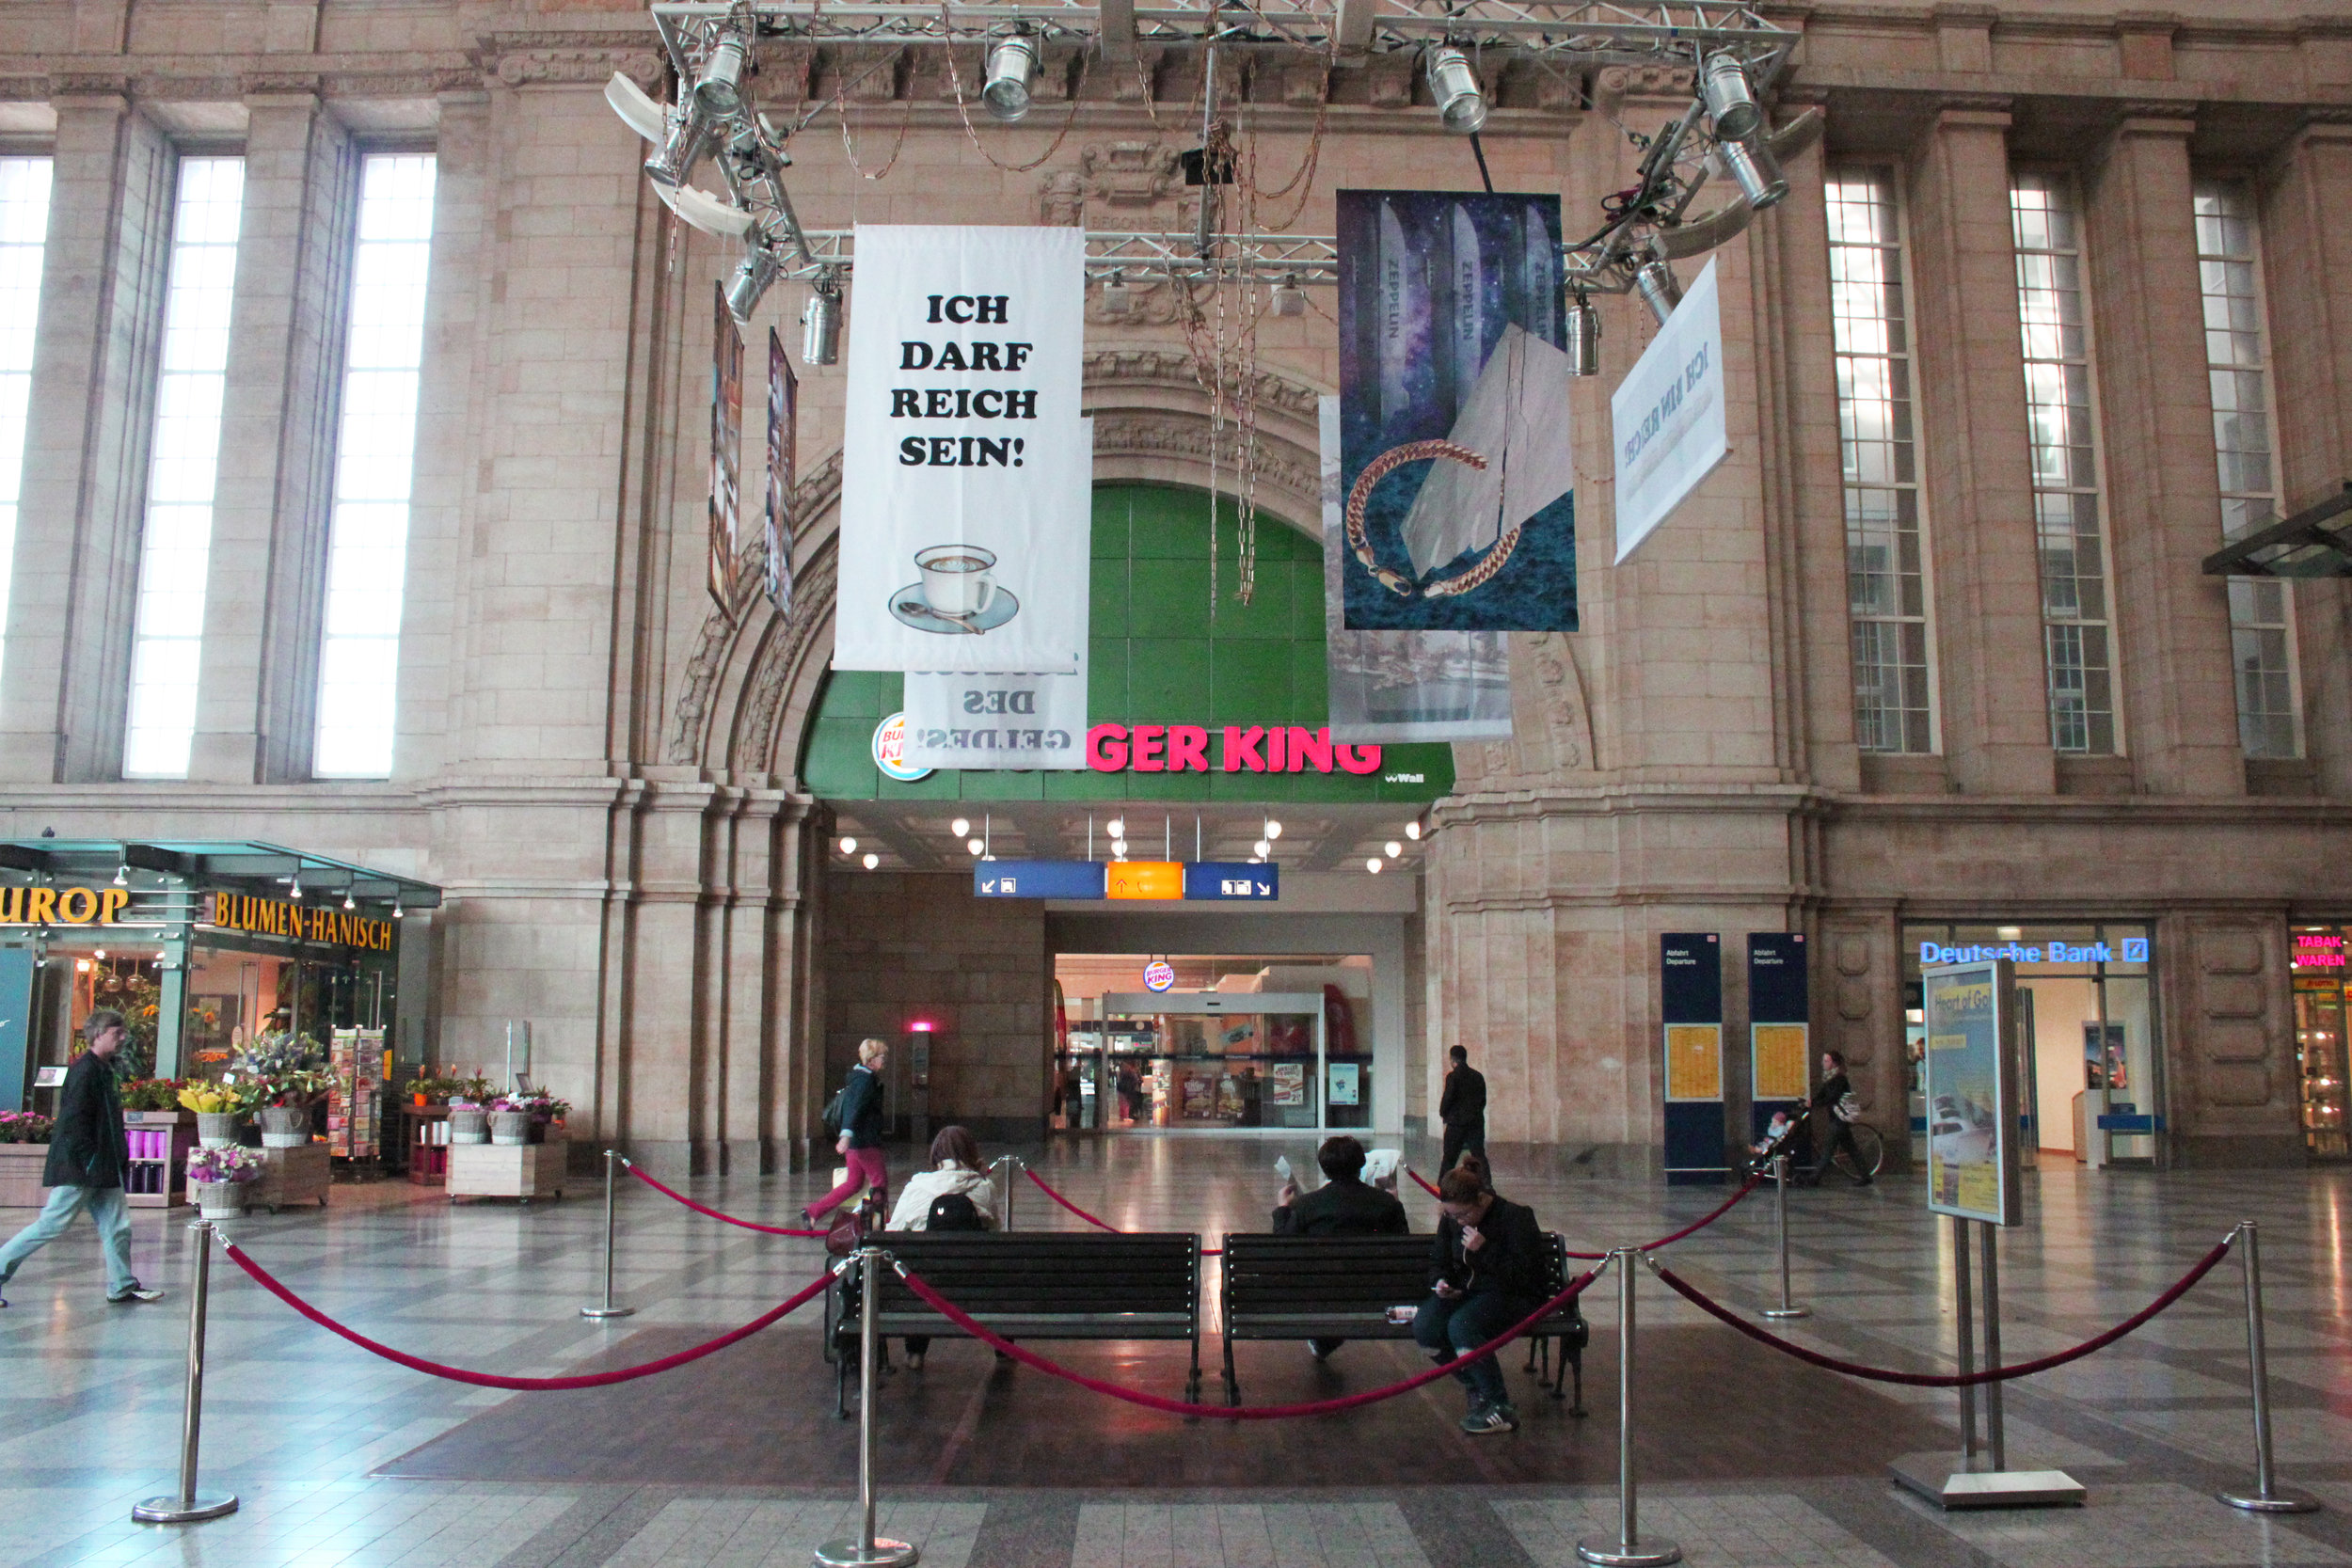 Heart of gold  took place in Leipzig in September 2017. The  Event consisted billboards, a waiting area in the east hall (Osthalle)  of the Leipzig main station and a bus tour with a performative character  led from the main station to the poster stations.